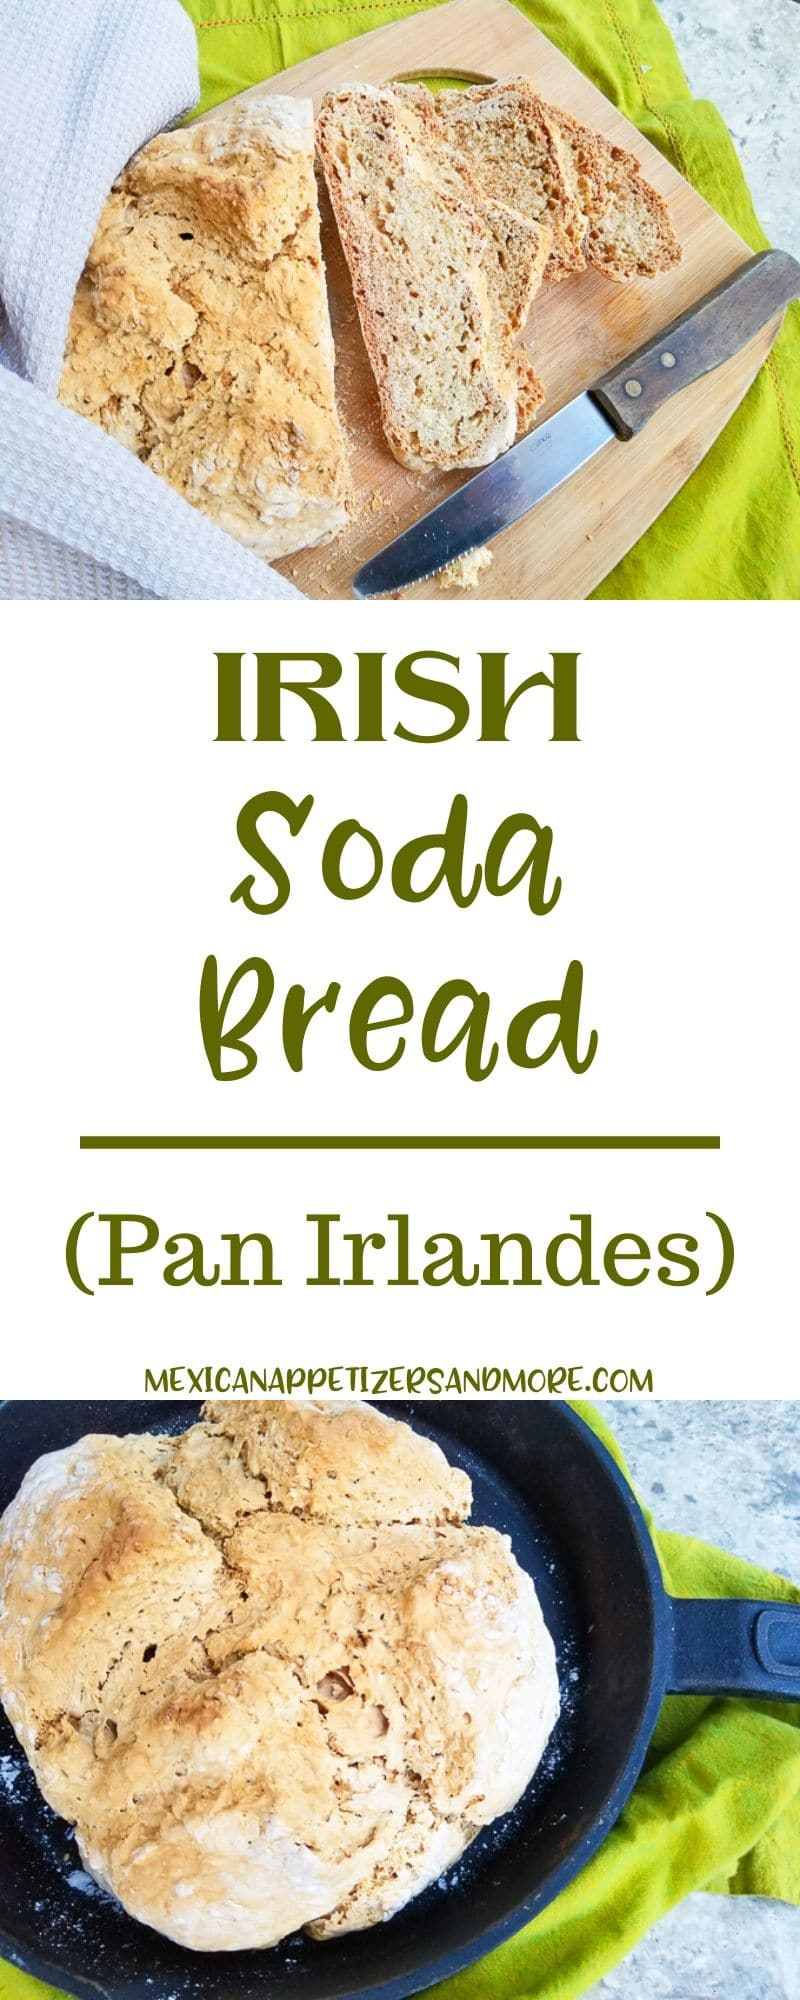 Irish Soda Bread is delicious and one of the easiest breads to make. Just 4 ingredients and zero rising time, makes this bread perfect to make any day of the week. Perfect with butter, jelly, for sandwiches or dunking in stews.#irishsodabread #sodabreads #breadrecipes #recetasdepan #pan